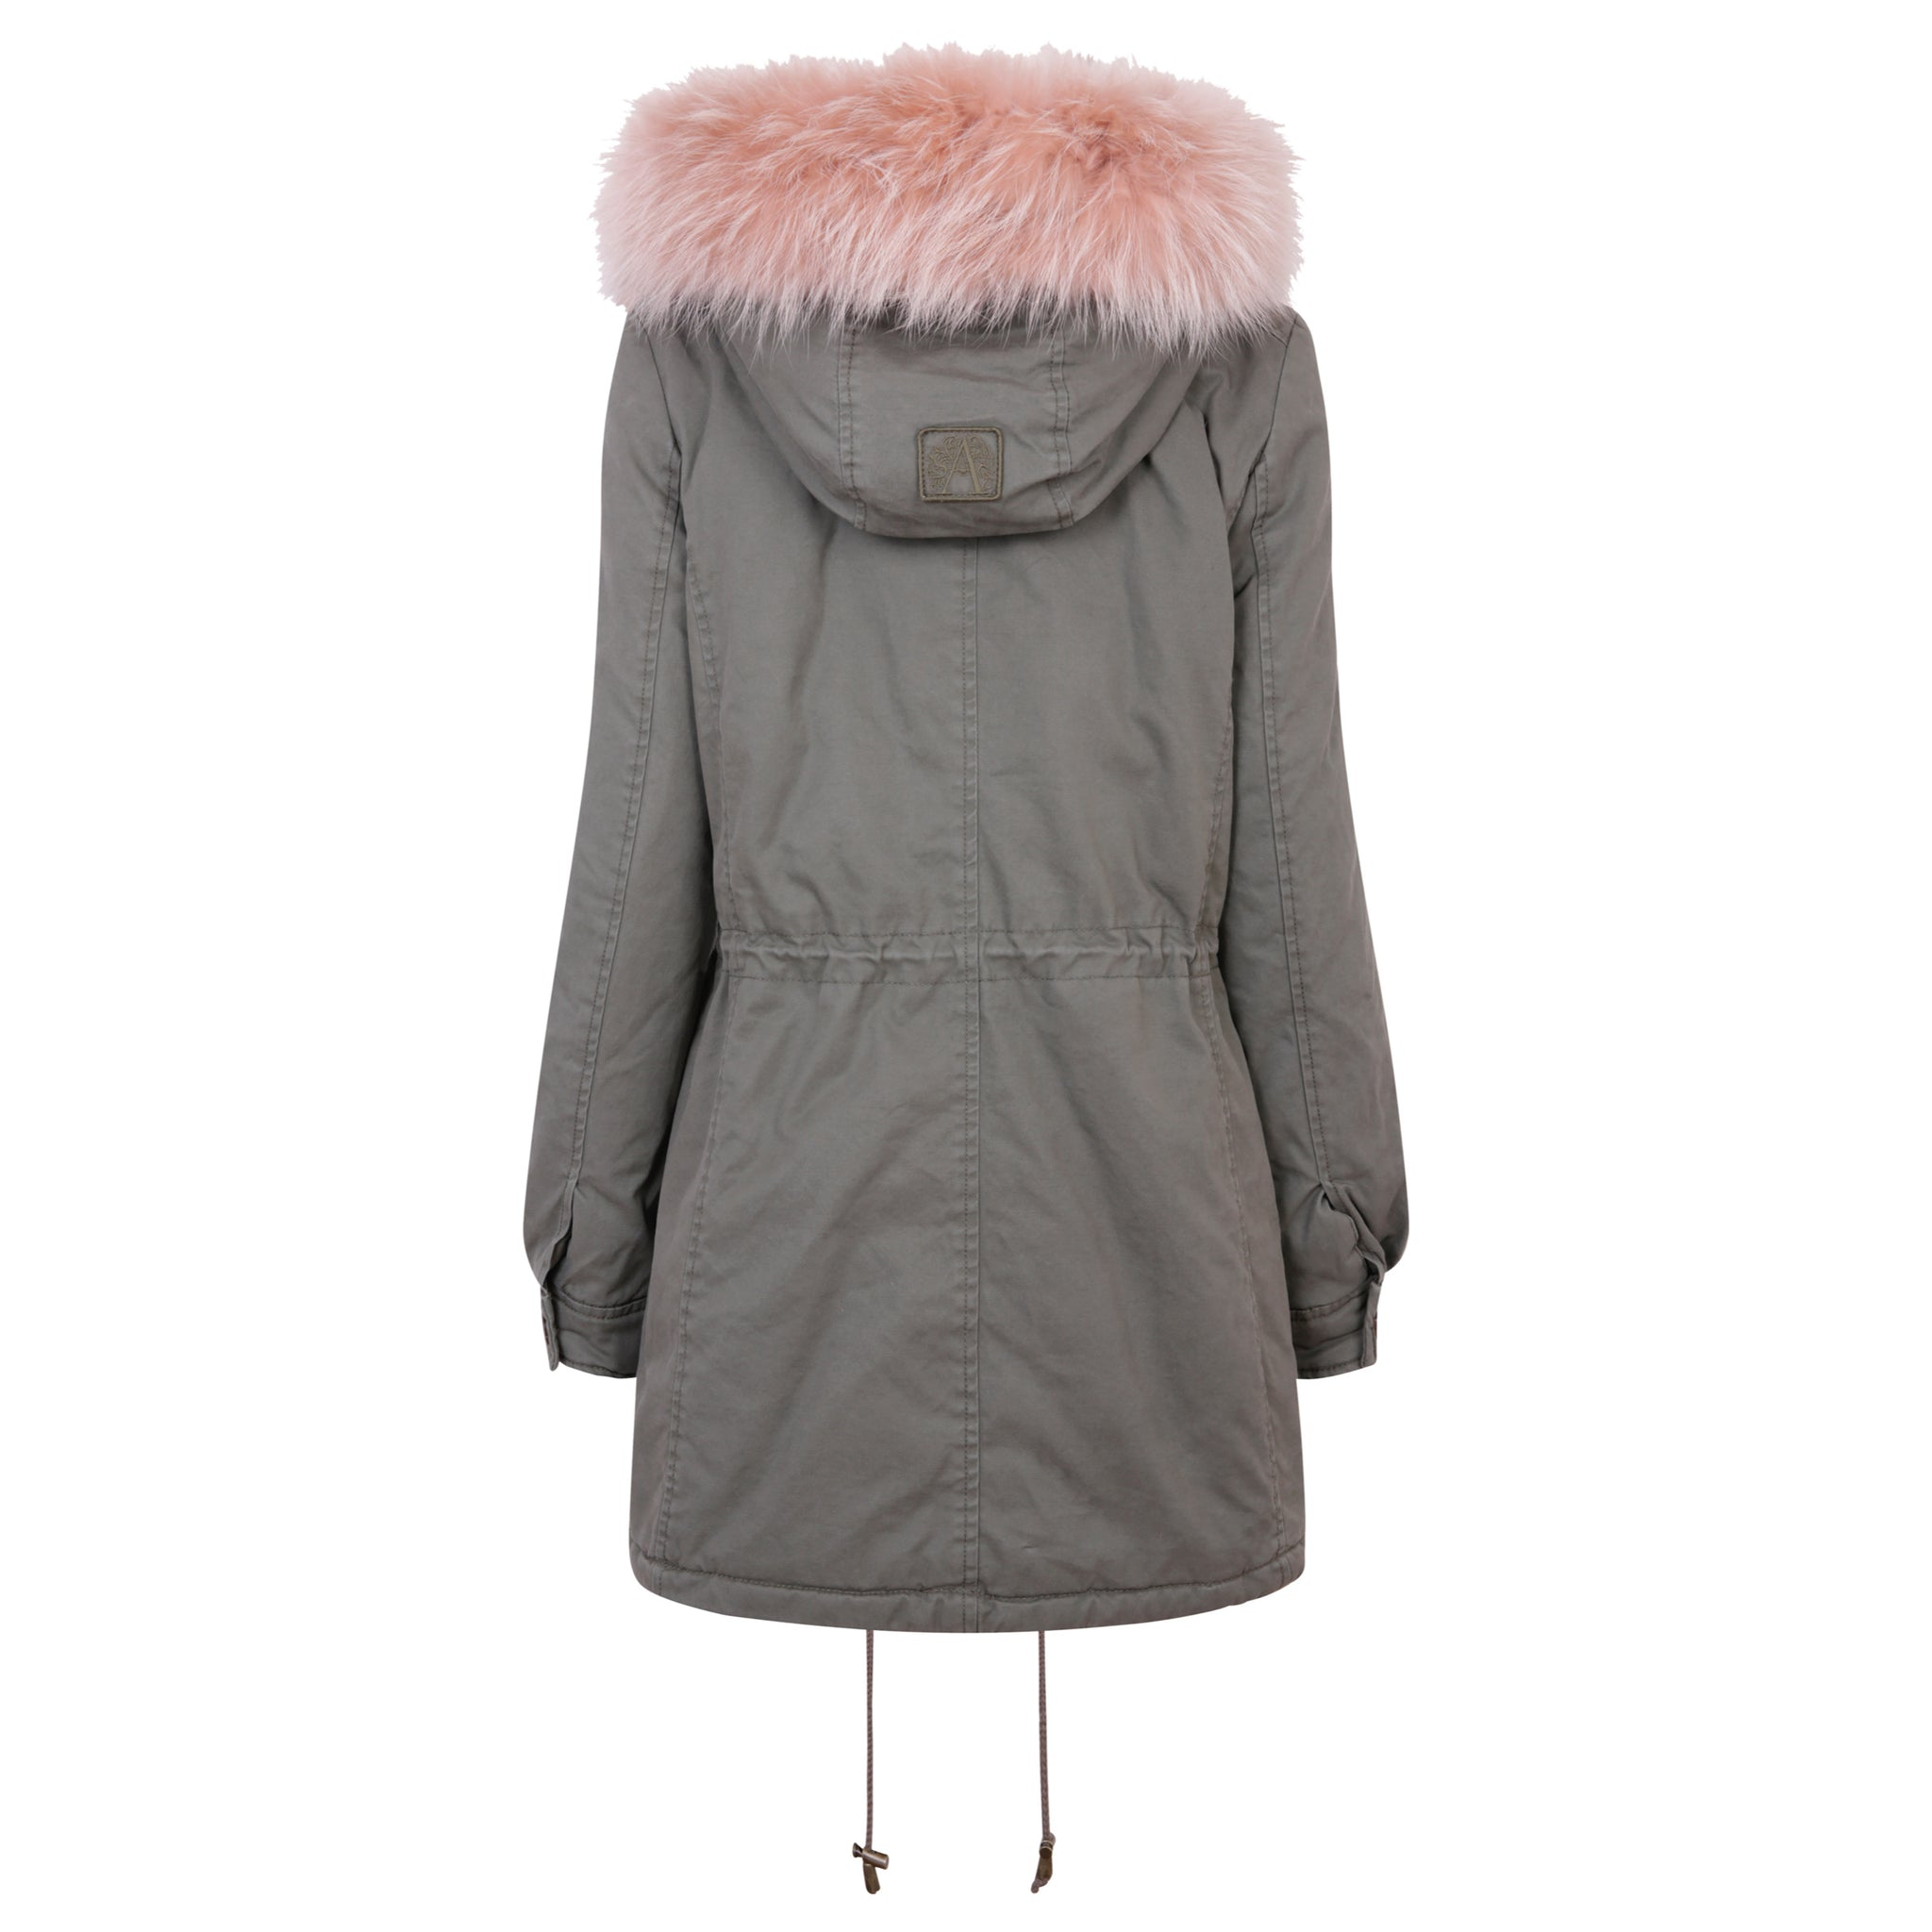 Clementine Military/Stucco Parka